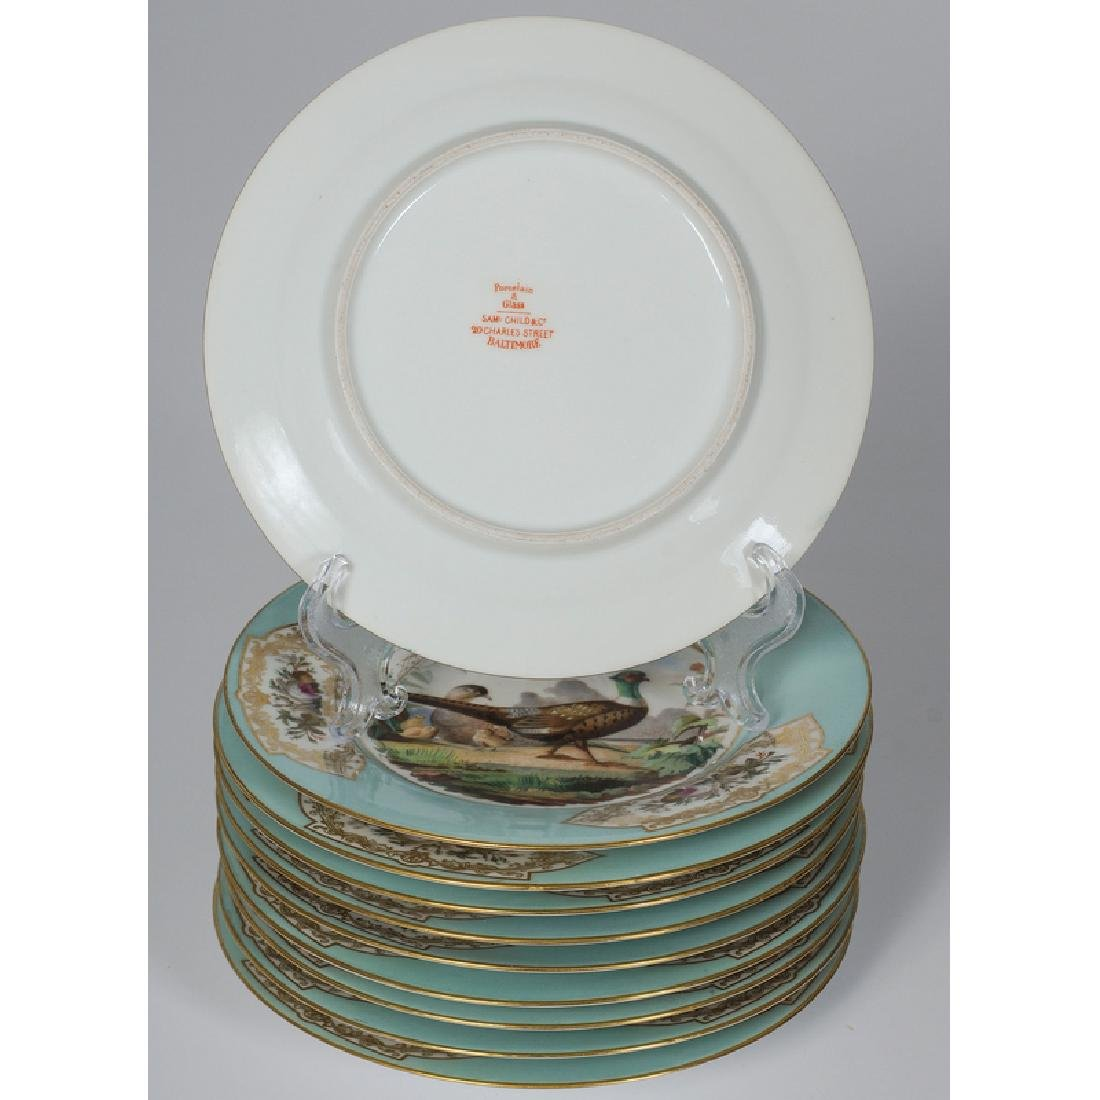 Porcelain Plates with Bird Scenes - 2